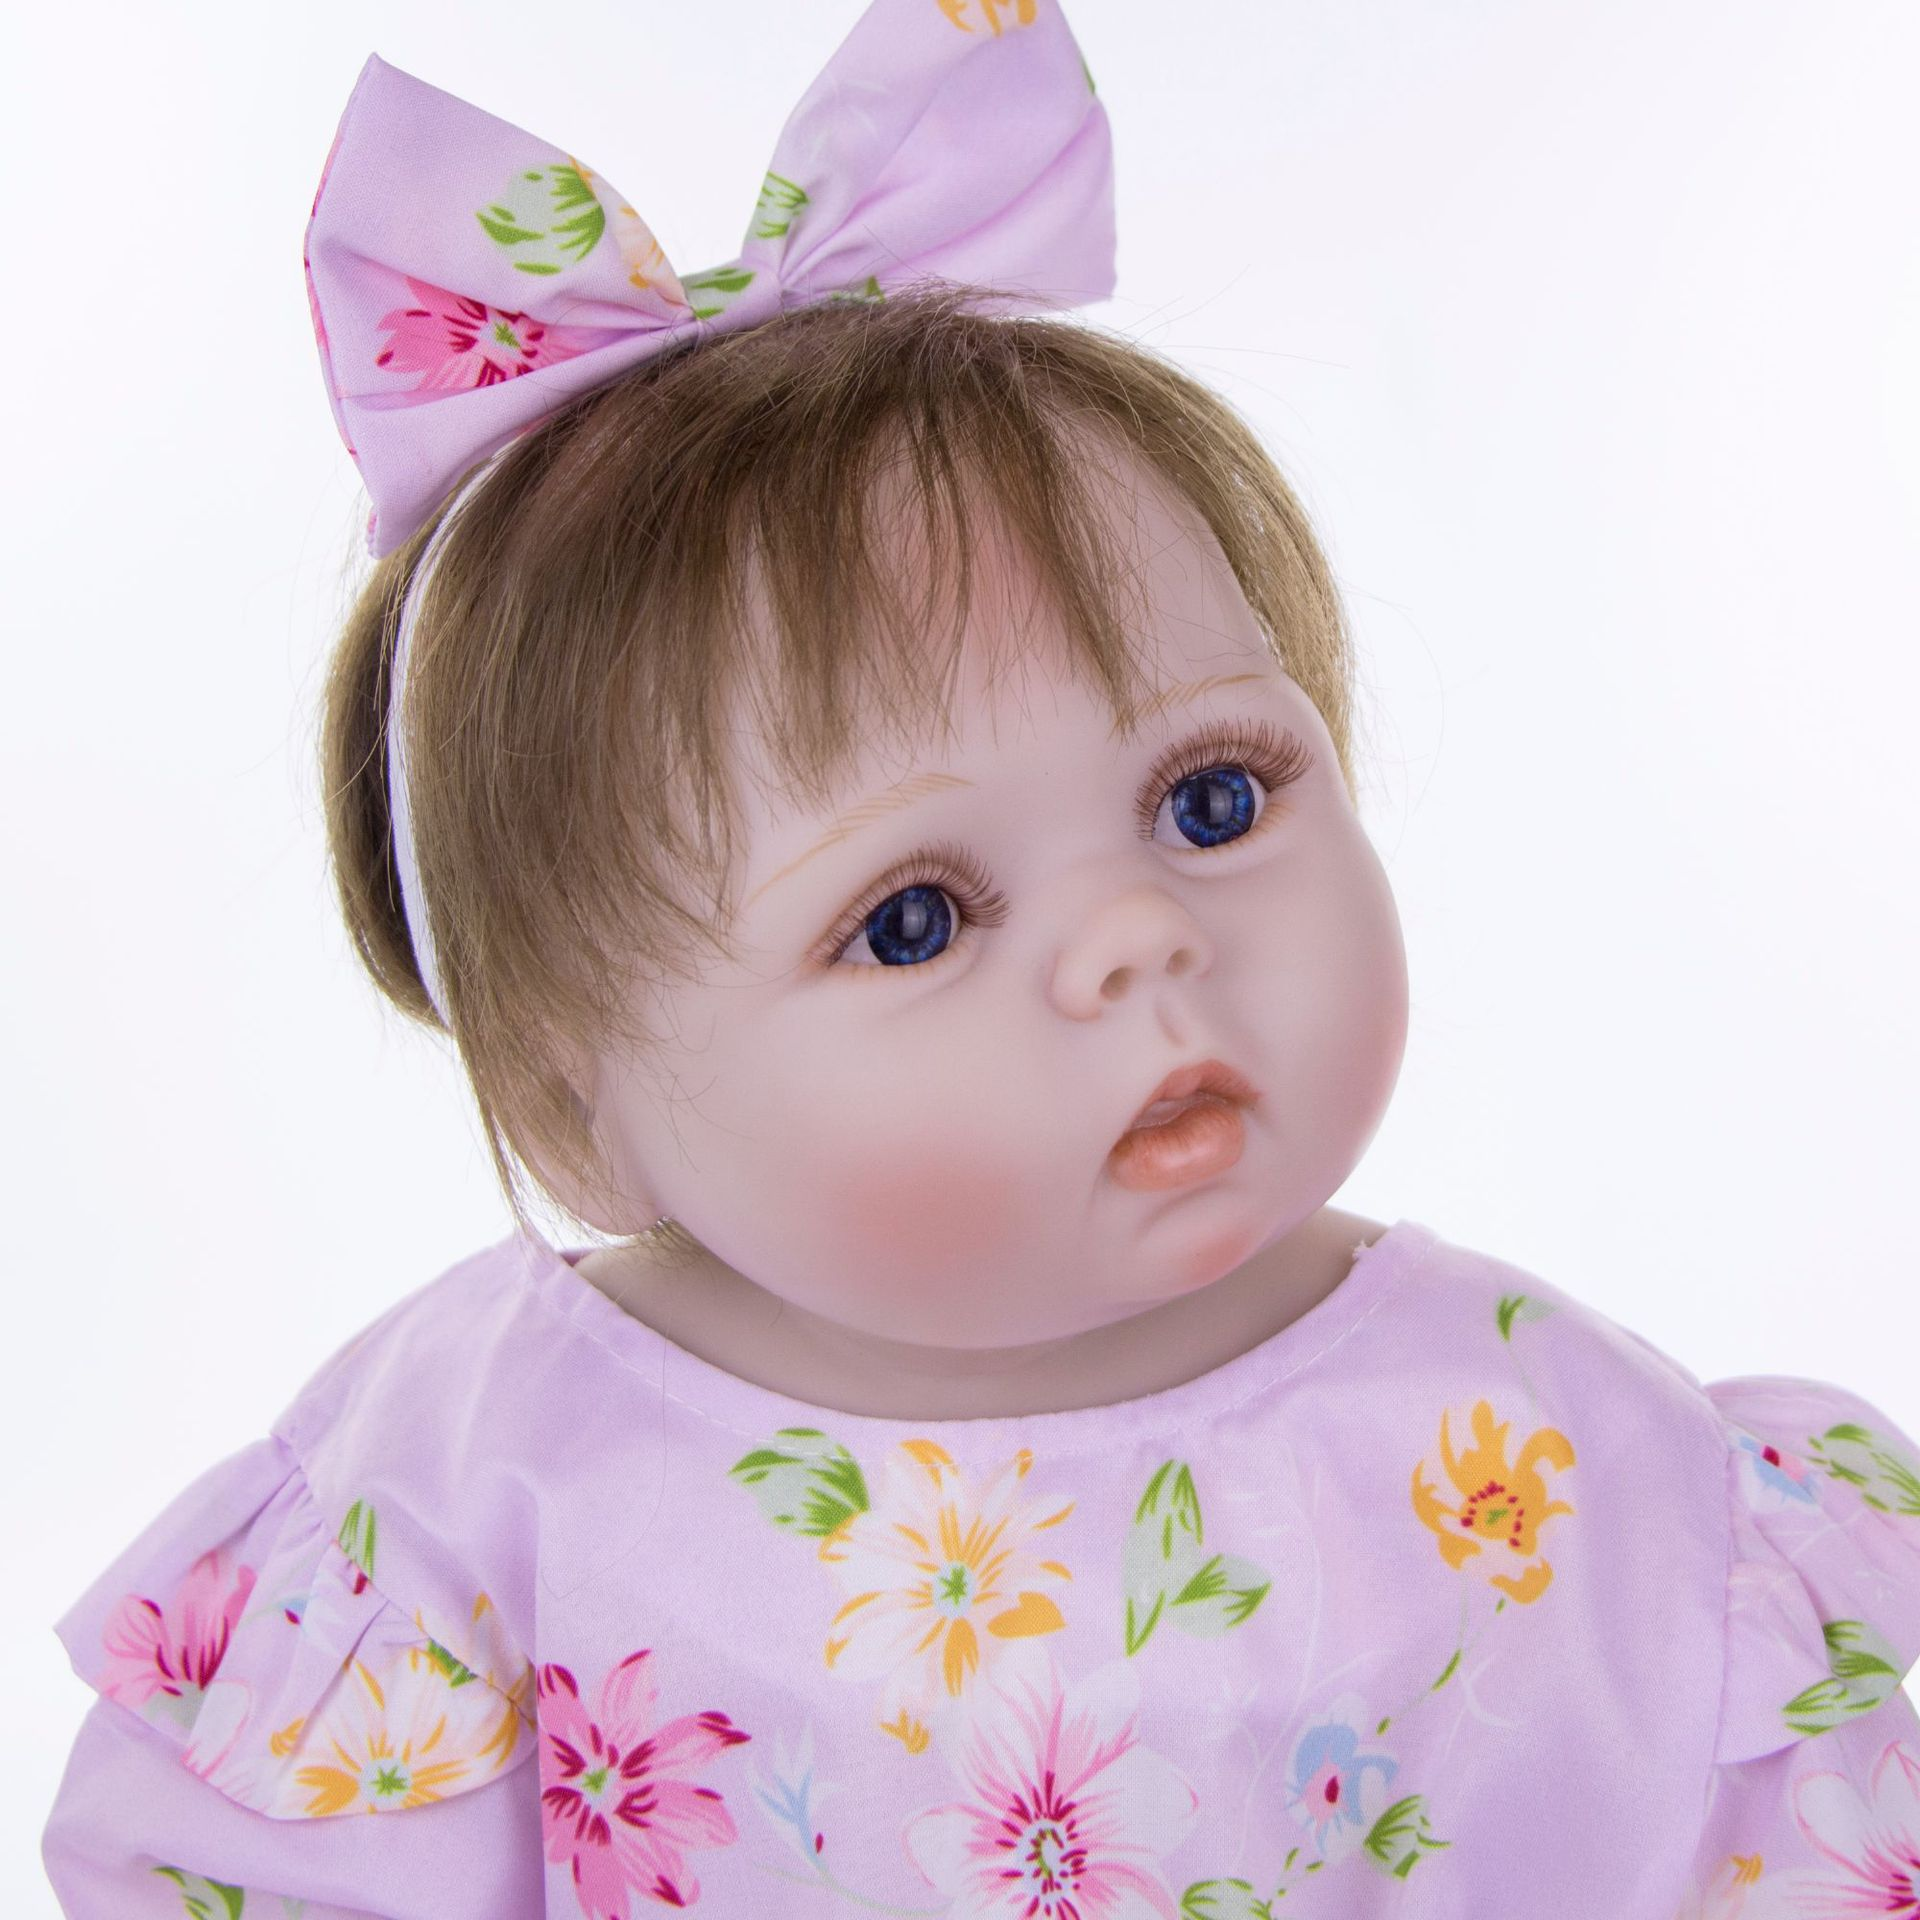 """NPK real baby victoria girl 23"""" full body silicone reborn baby dolls rooted new hair bebes reborn kids toy gift bonecas-in Dolls from Toys & Hobbies    3"""